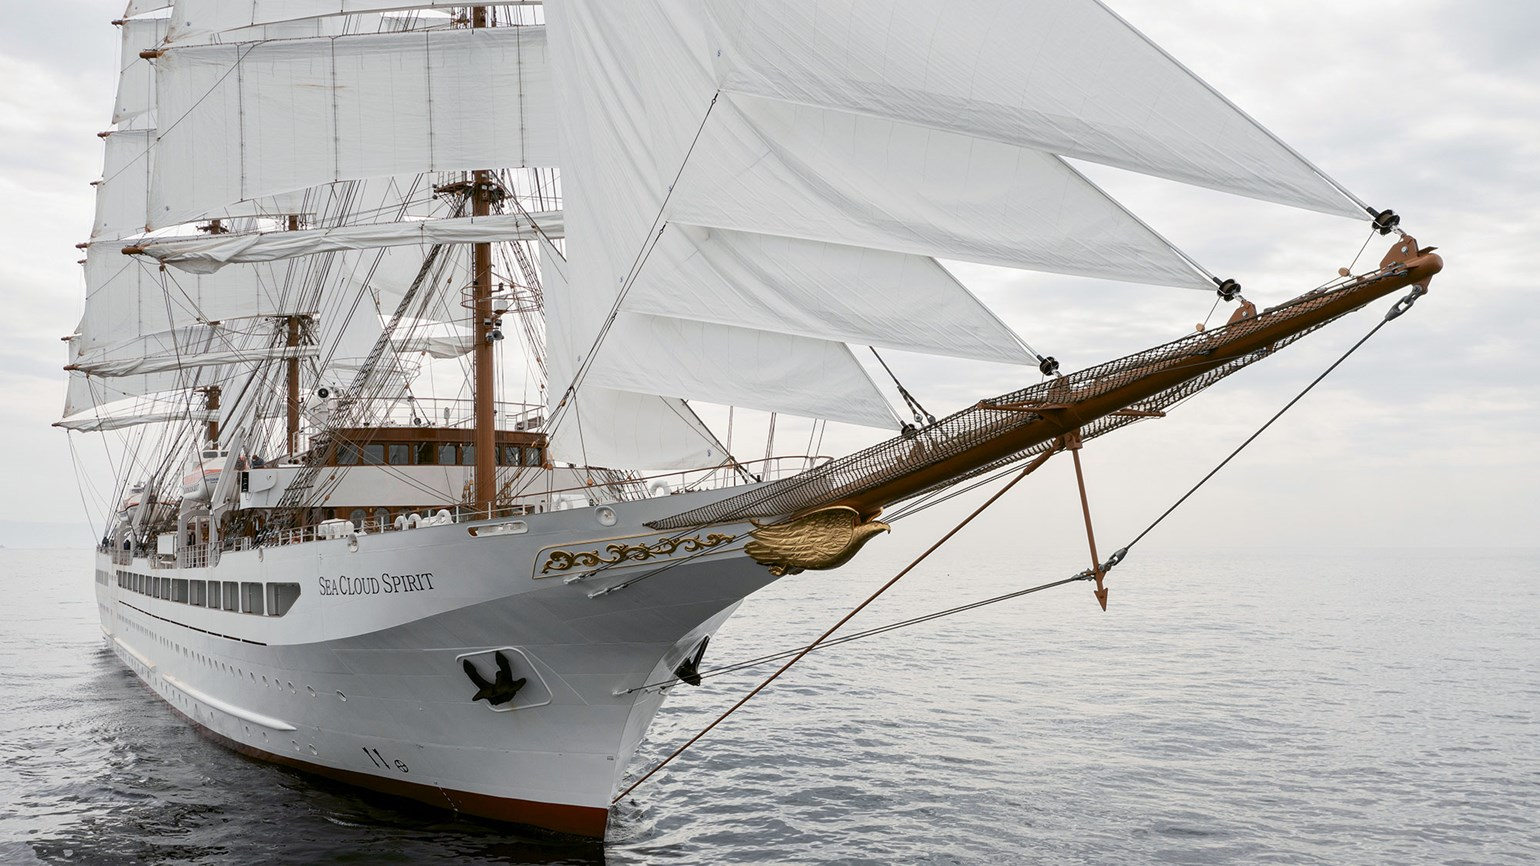 Long-awaited Sea Cloud Spirit to set sail in September